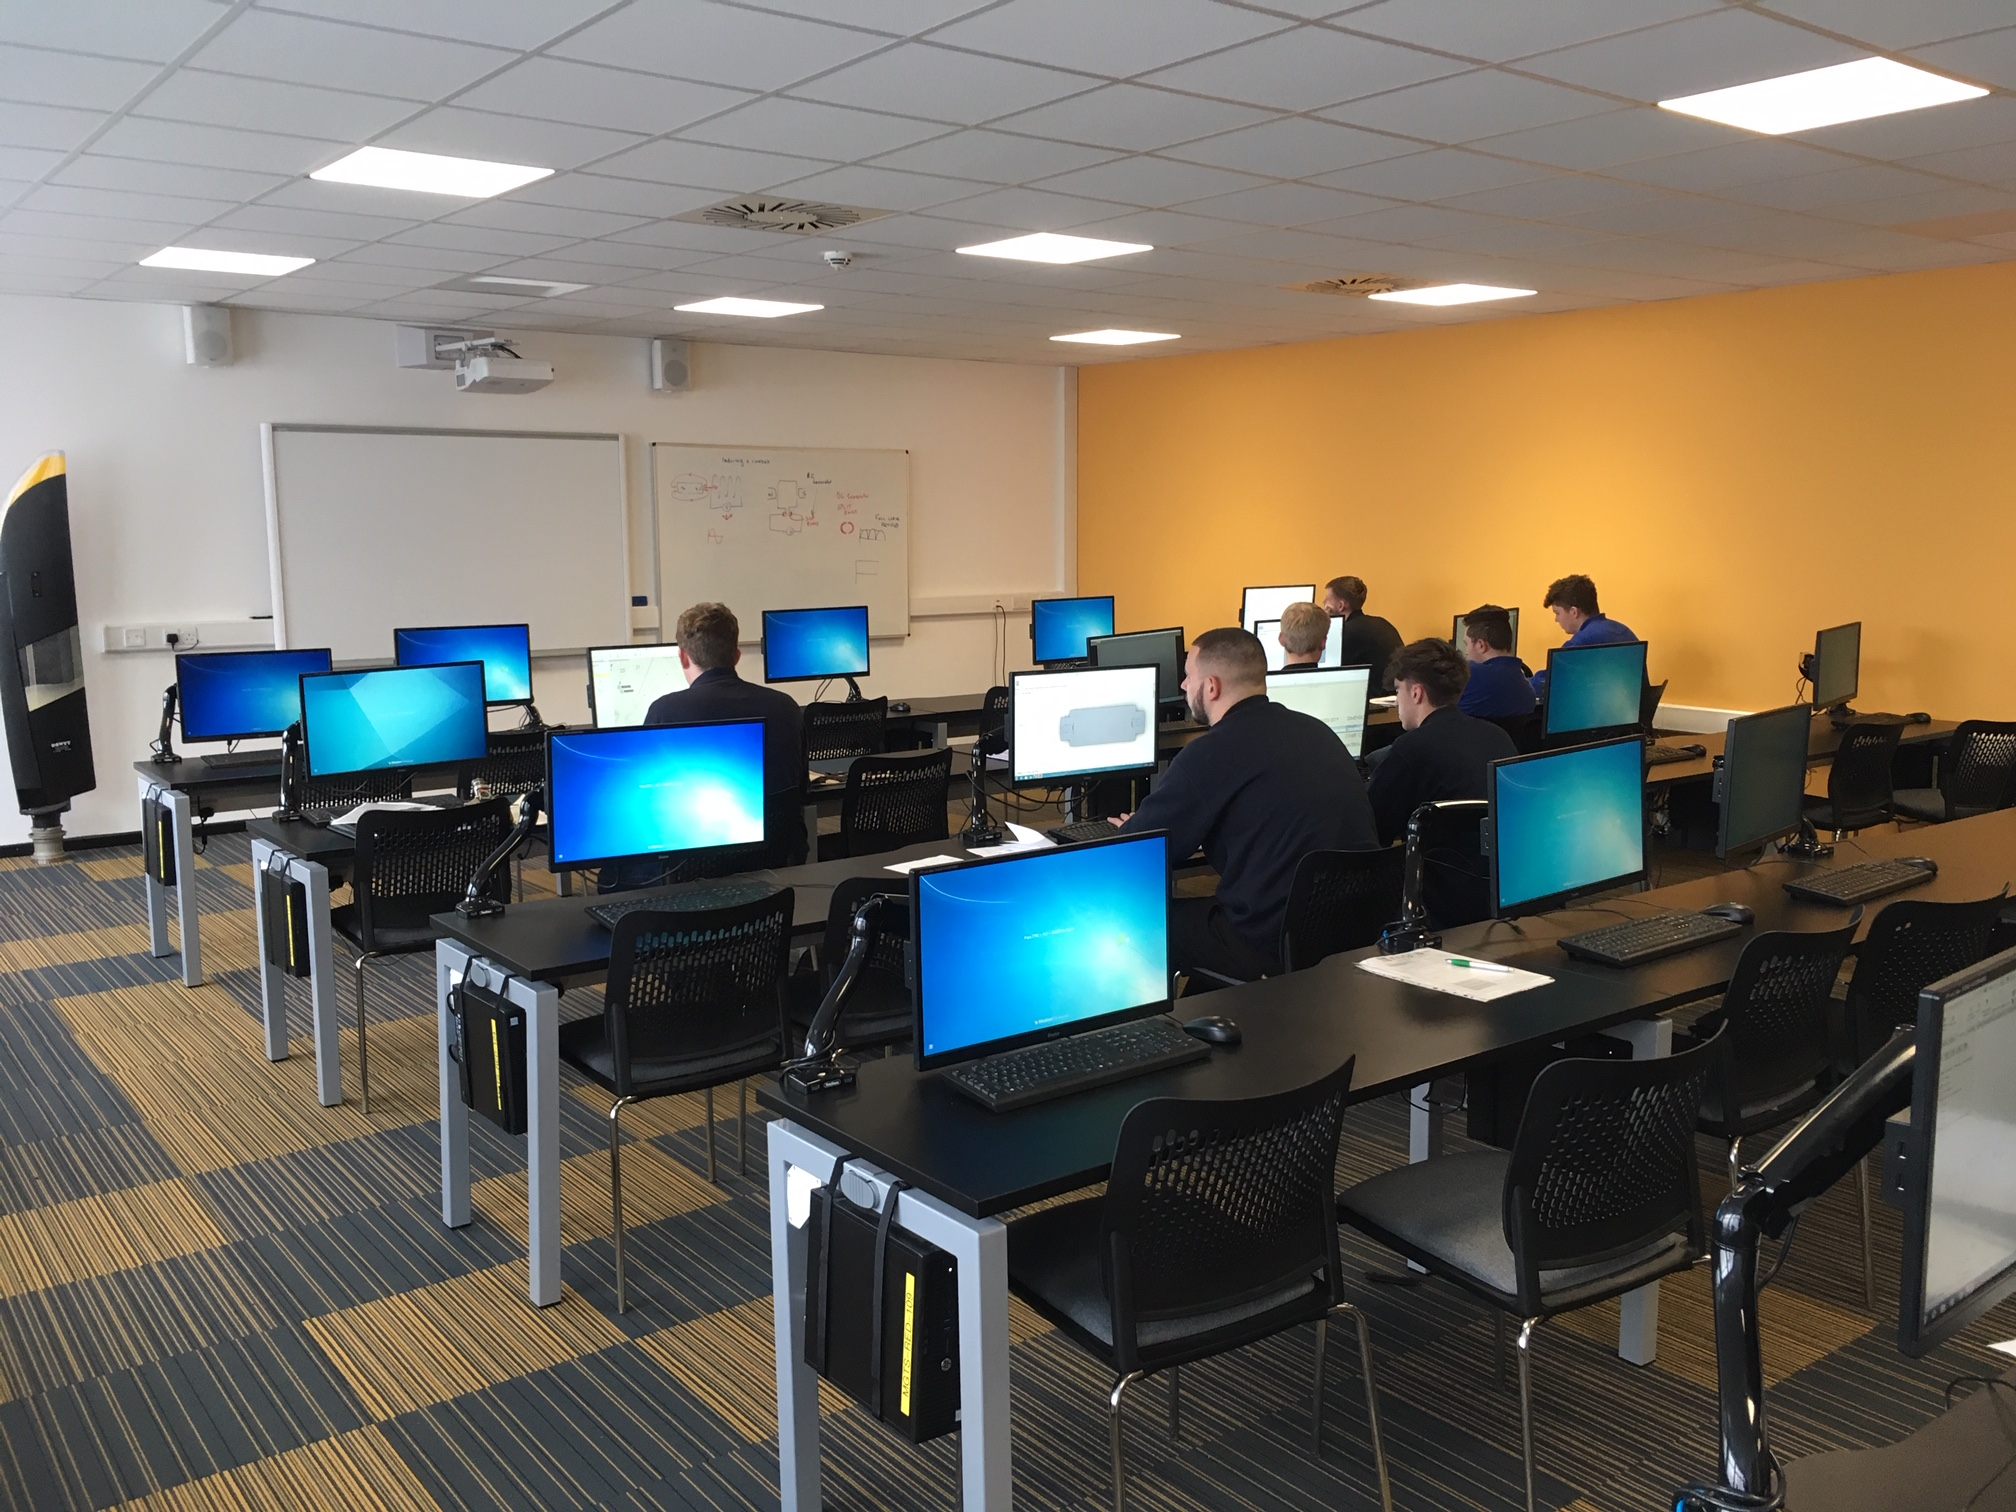 Apprentices learning on computers